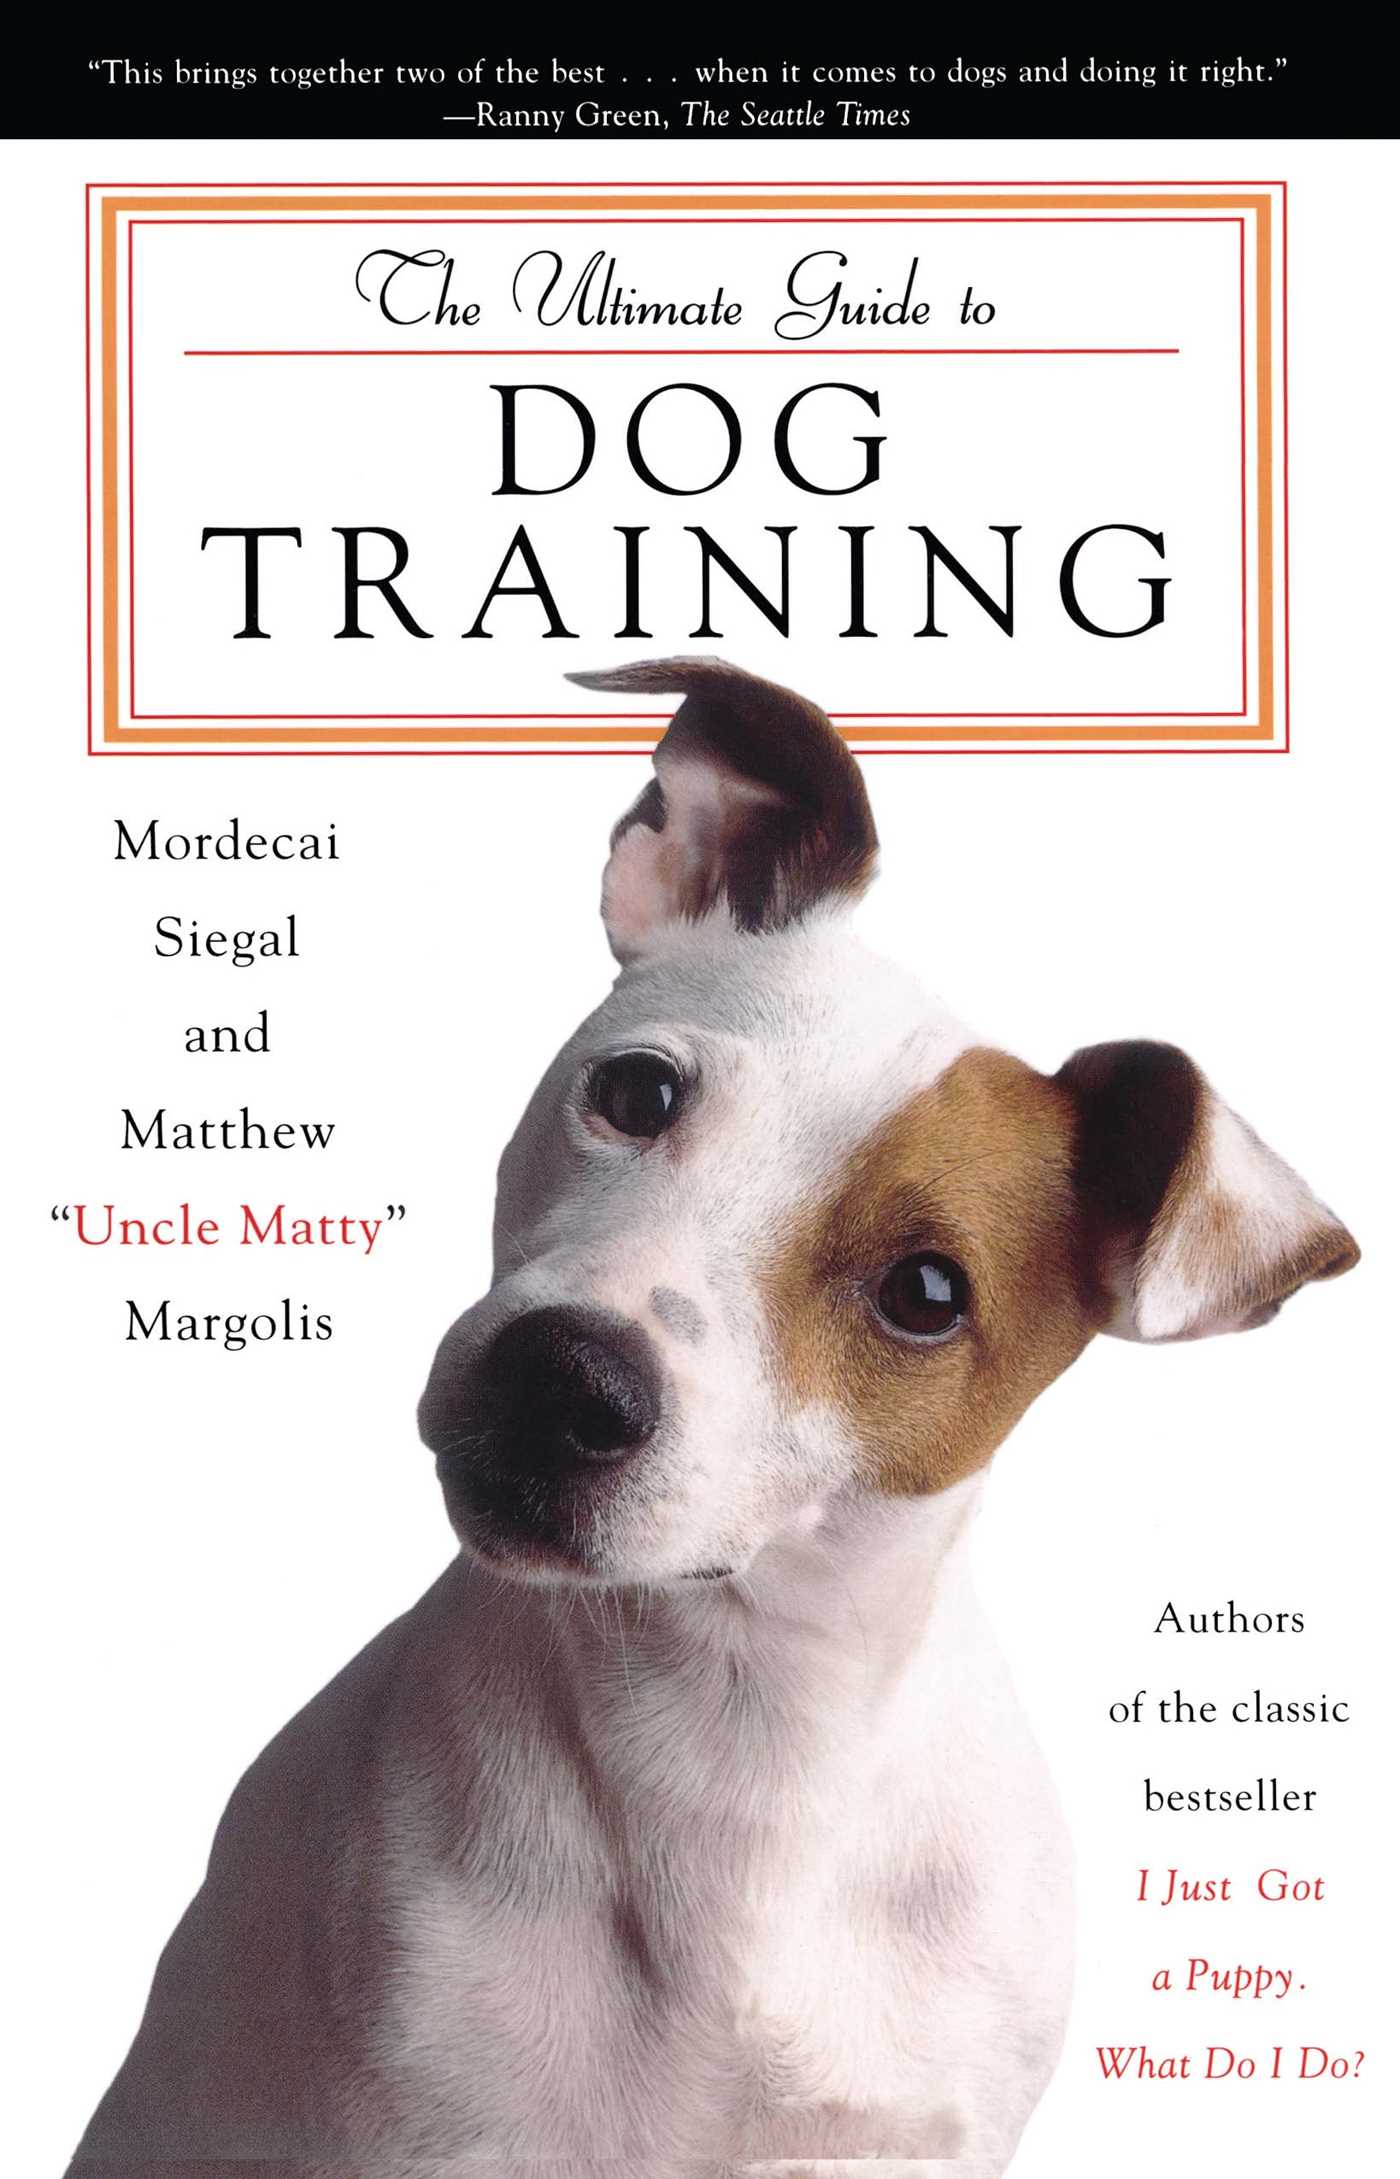 The ultimate guide to dog training 9780684856469 hr